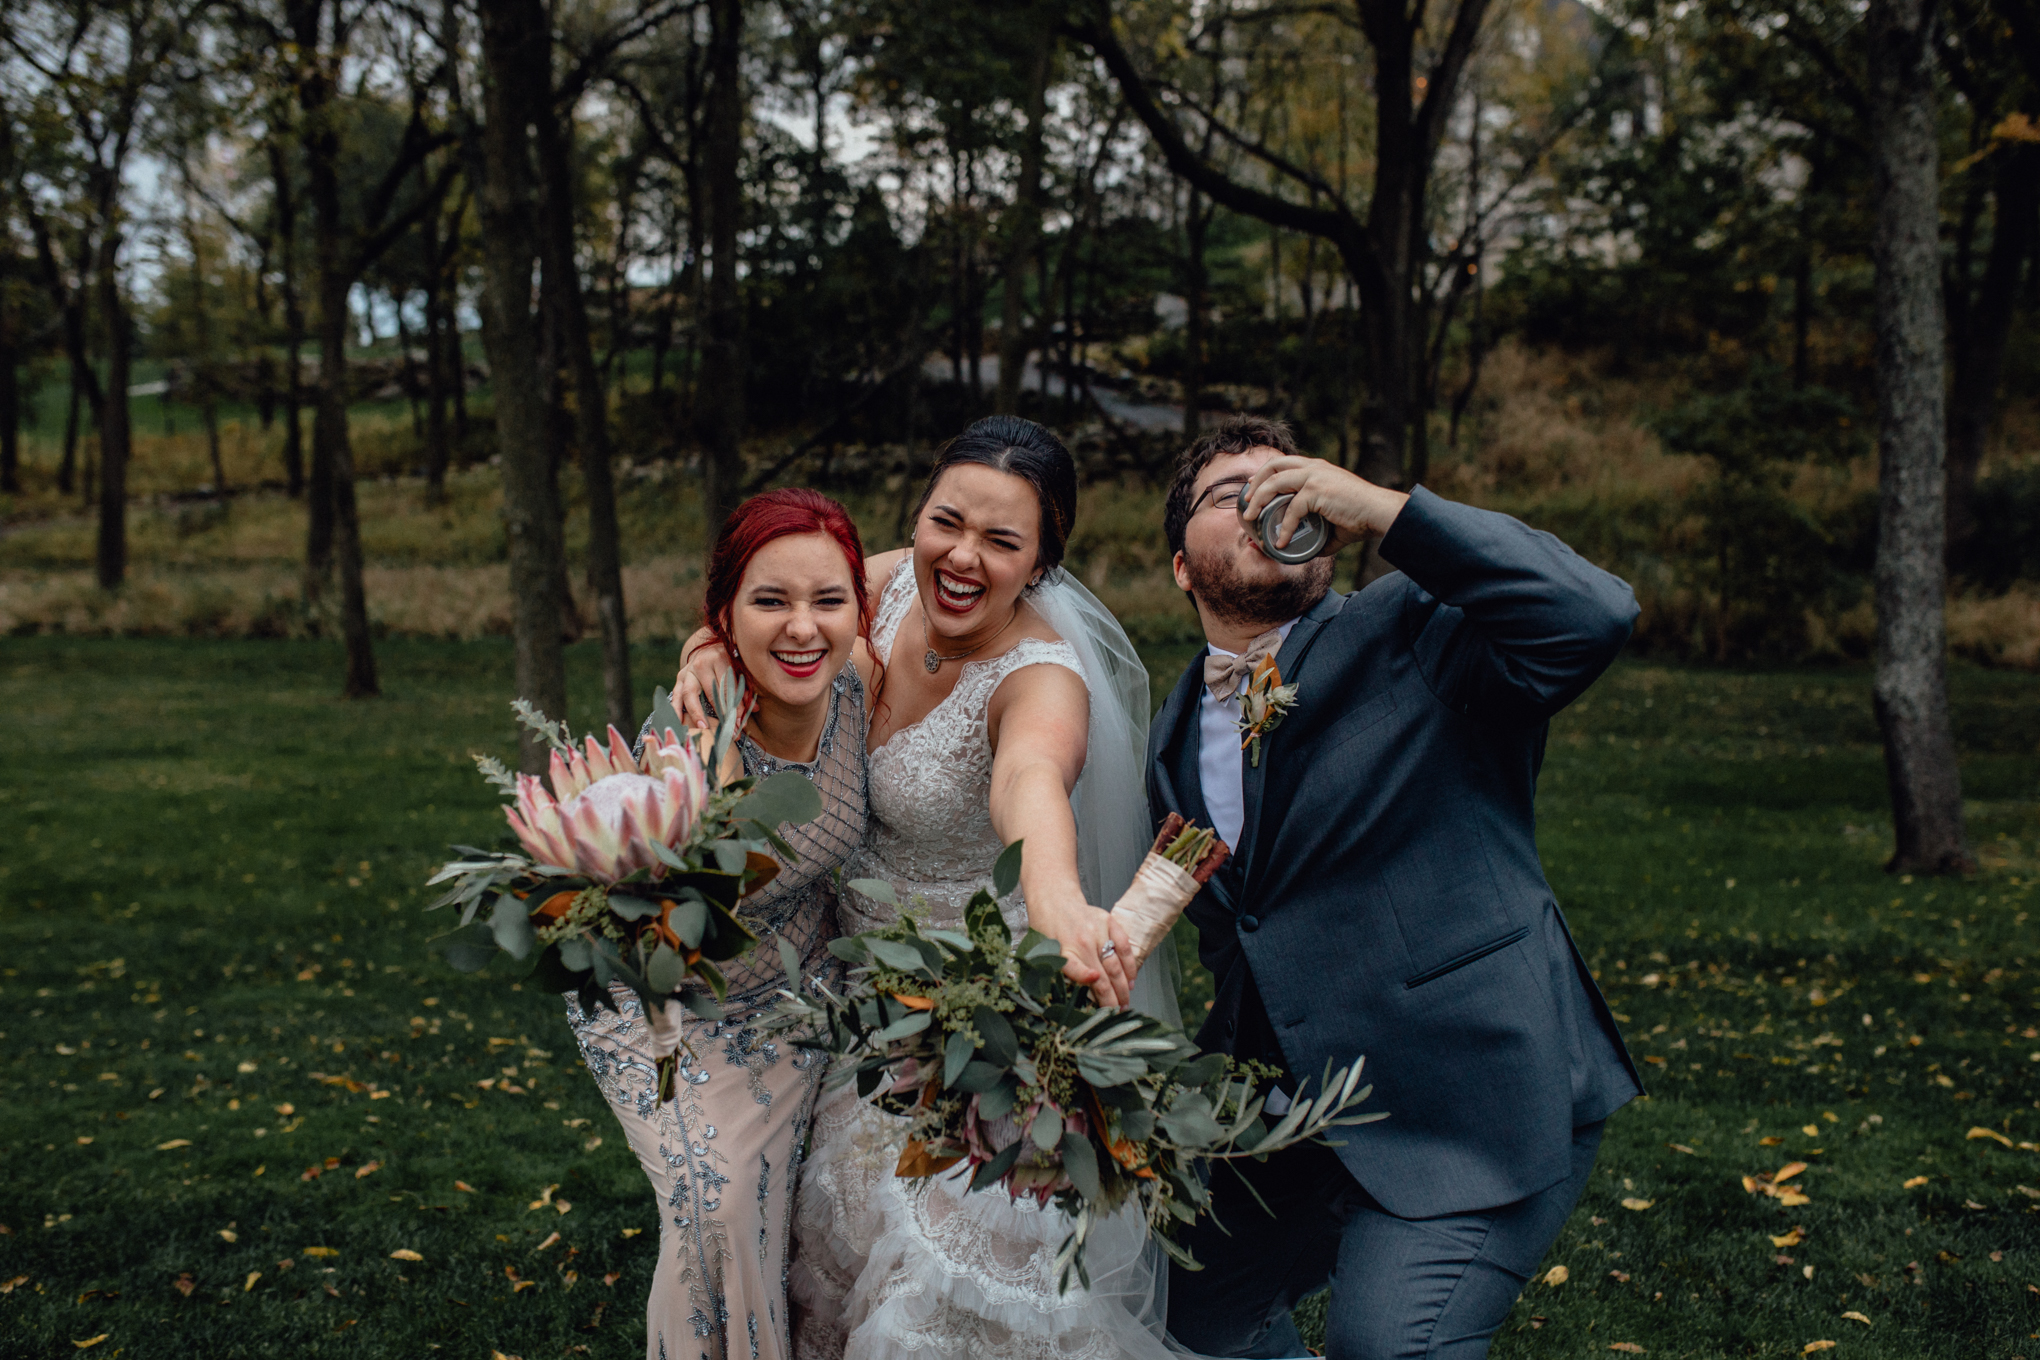 bridesmaid-and-groomsman-smiling-with-bride-in-grass.jpg